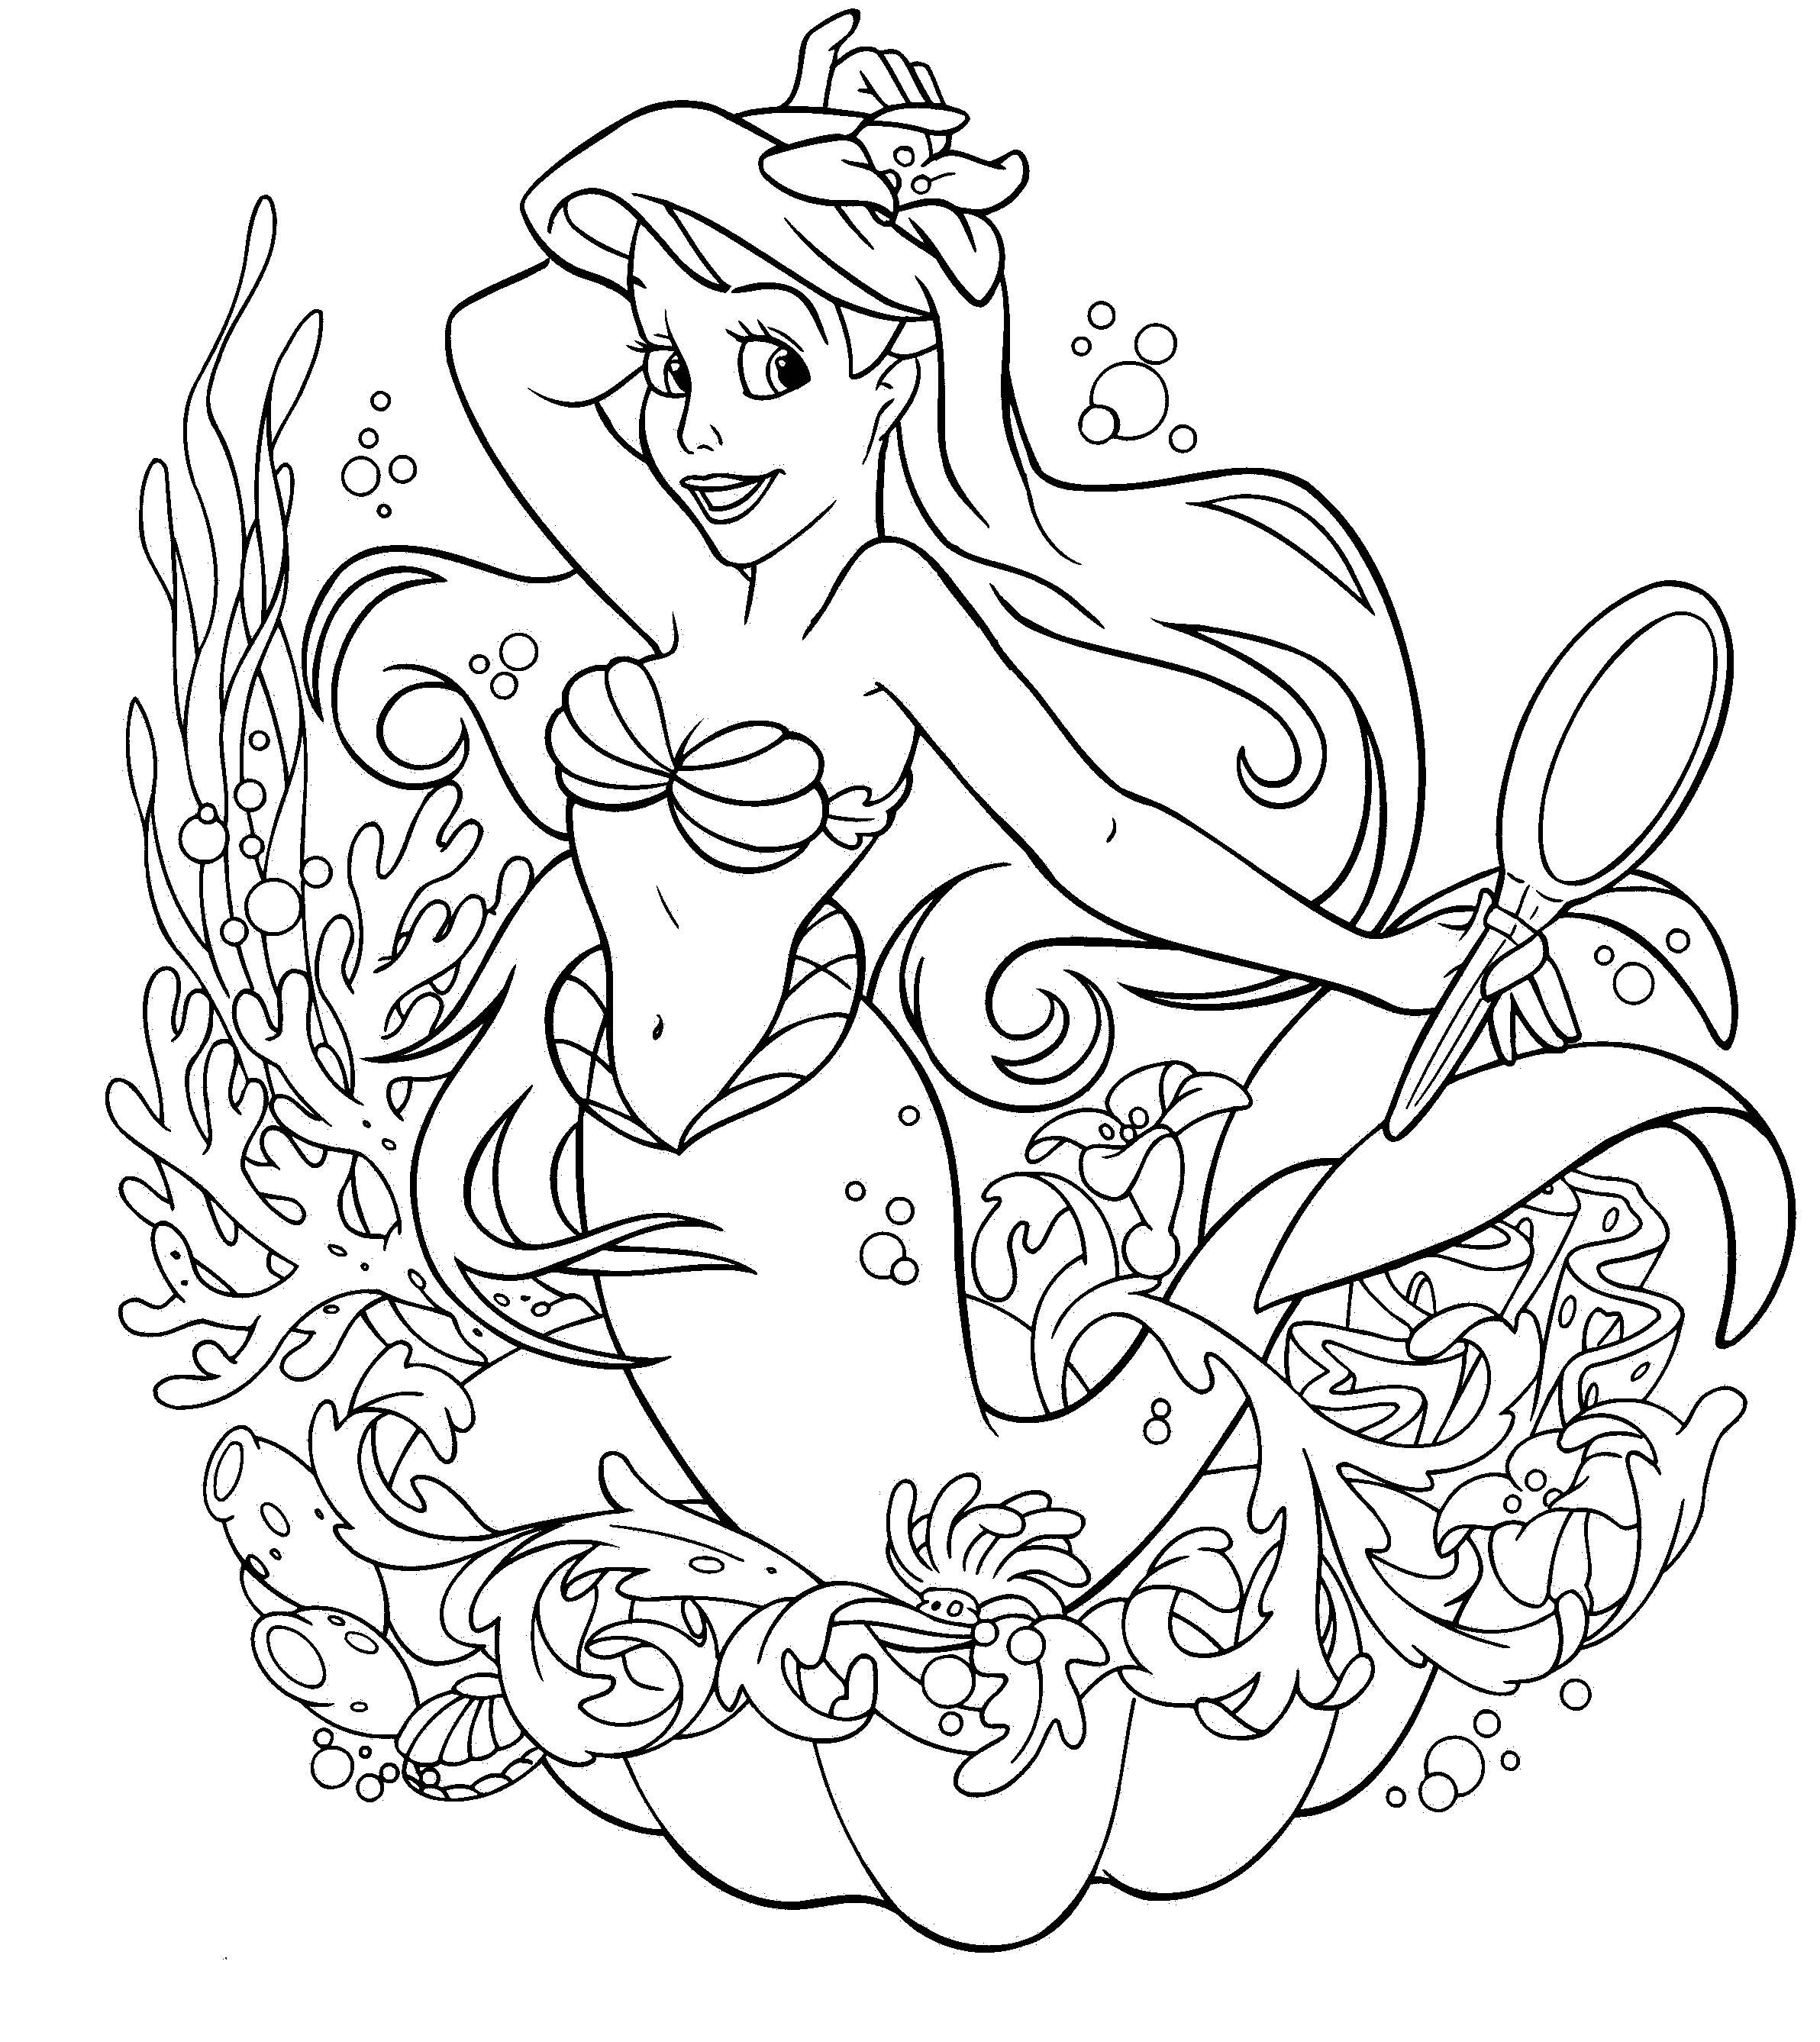 Disney princess birthday coloring pages - Princess Coloring Pages Coloring Pages Hello Kitty Coloring Disney Princesses Coloring Page